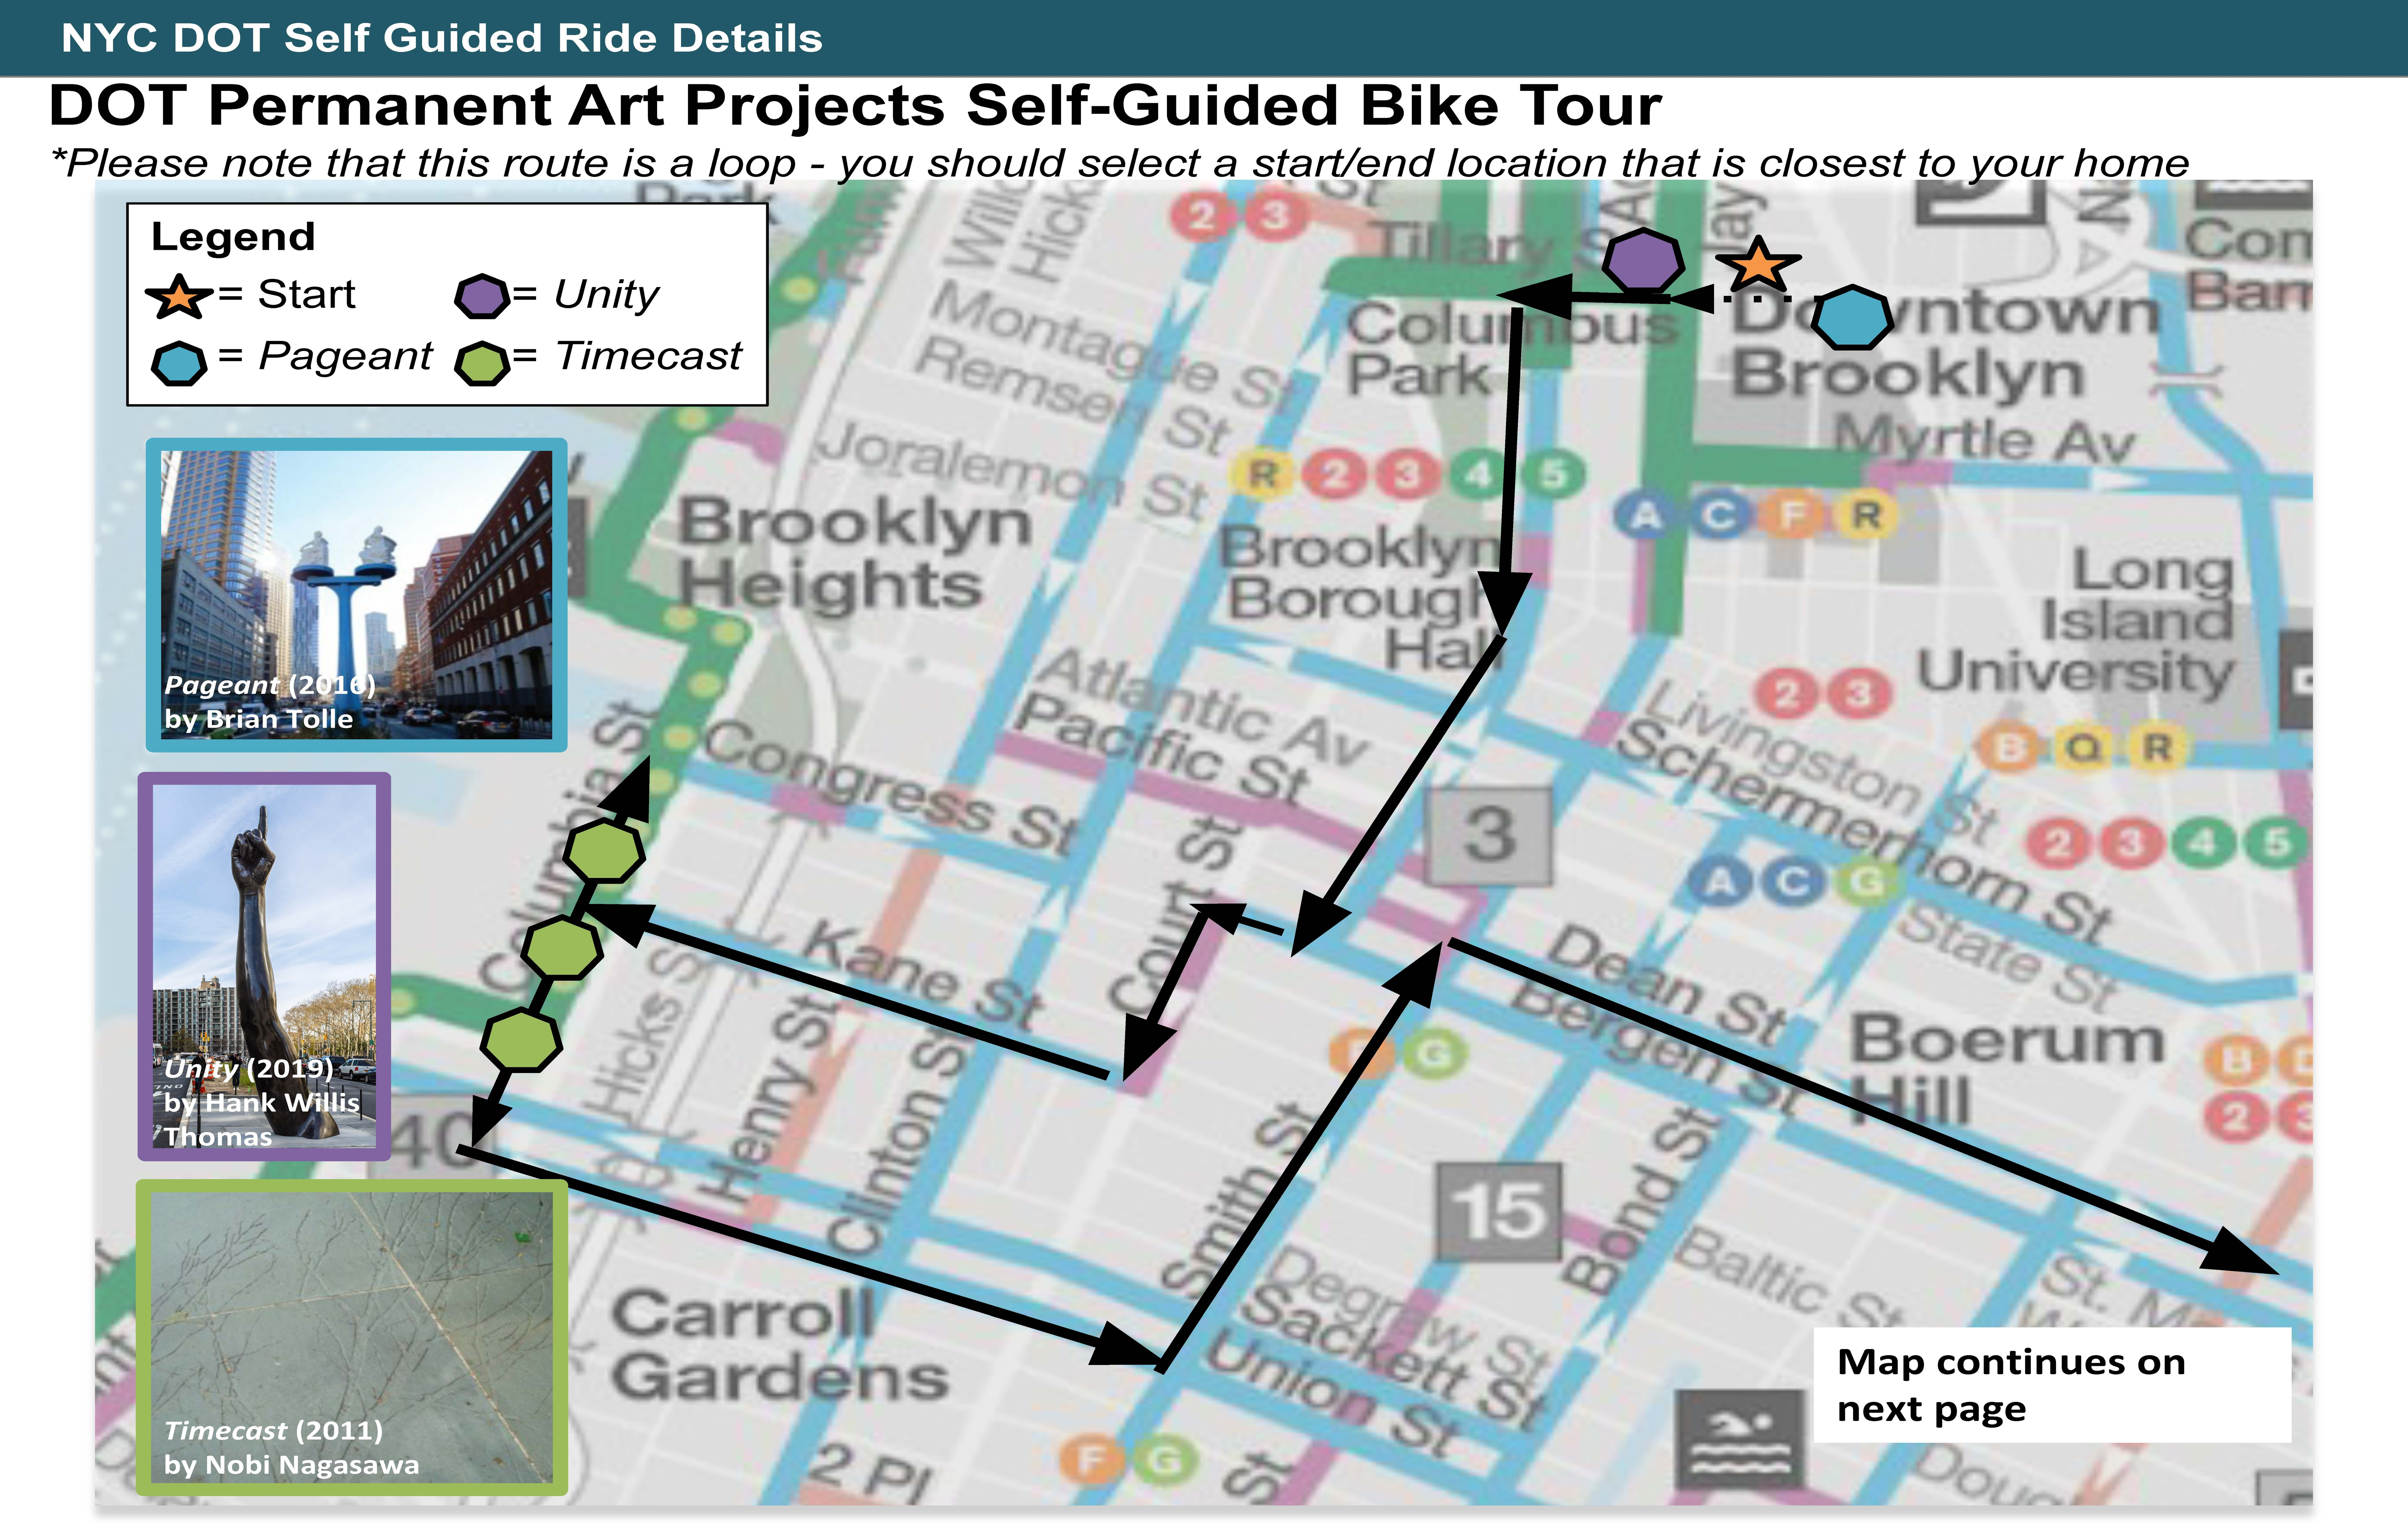 DOT Permanent Art Projects Self-Guided Bike Tour Part 1